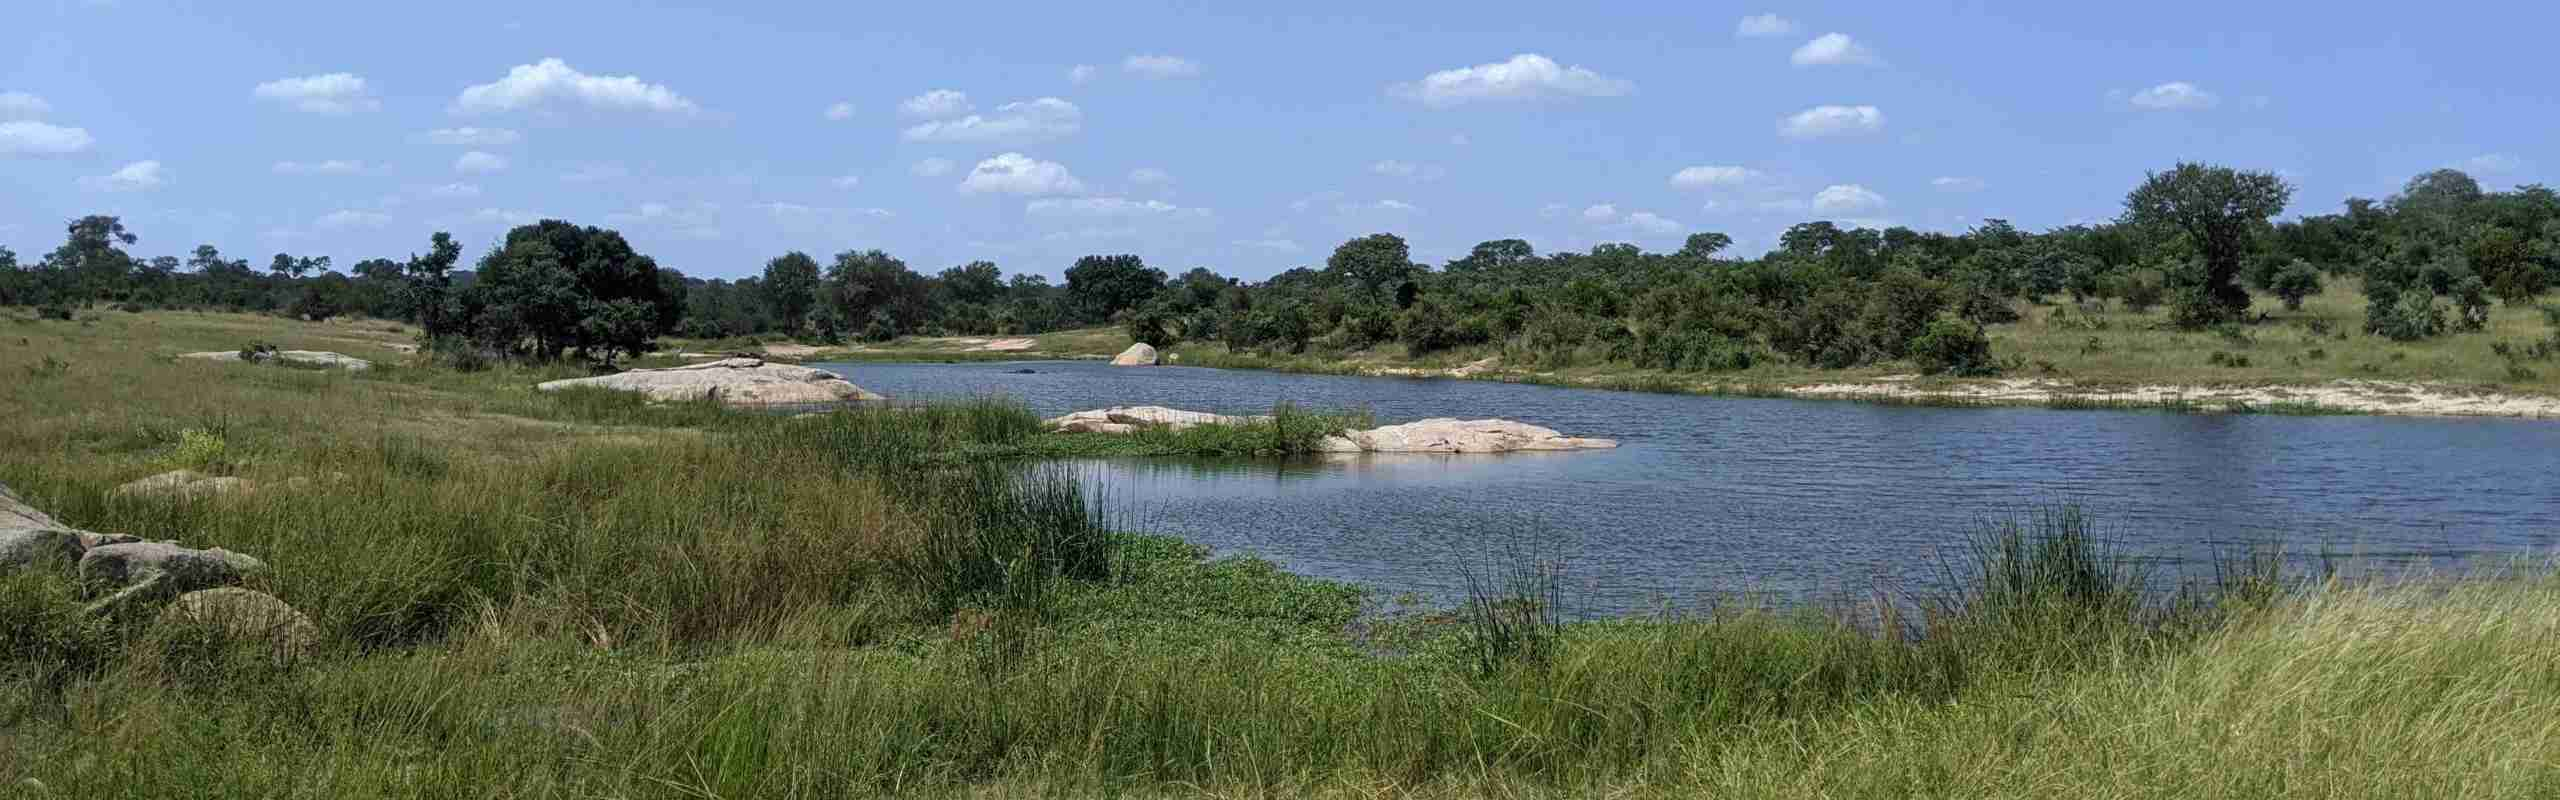 Kruger National Park water hole